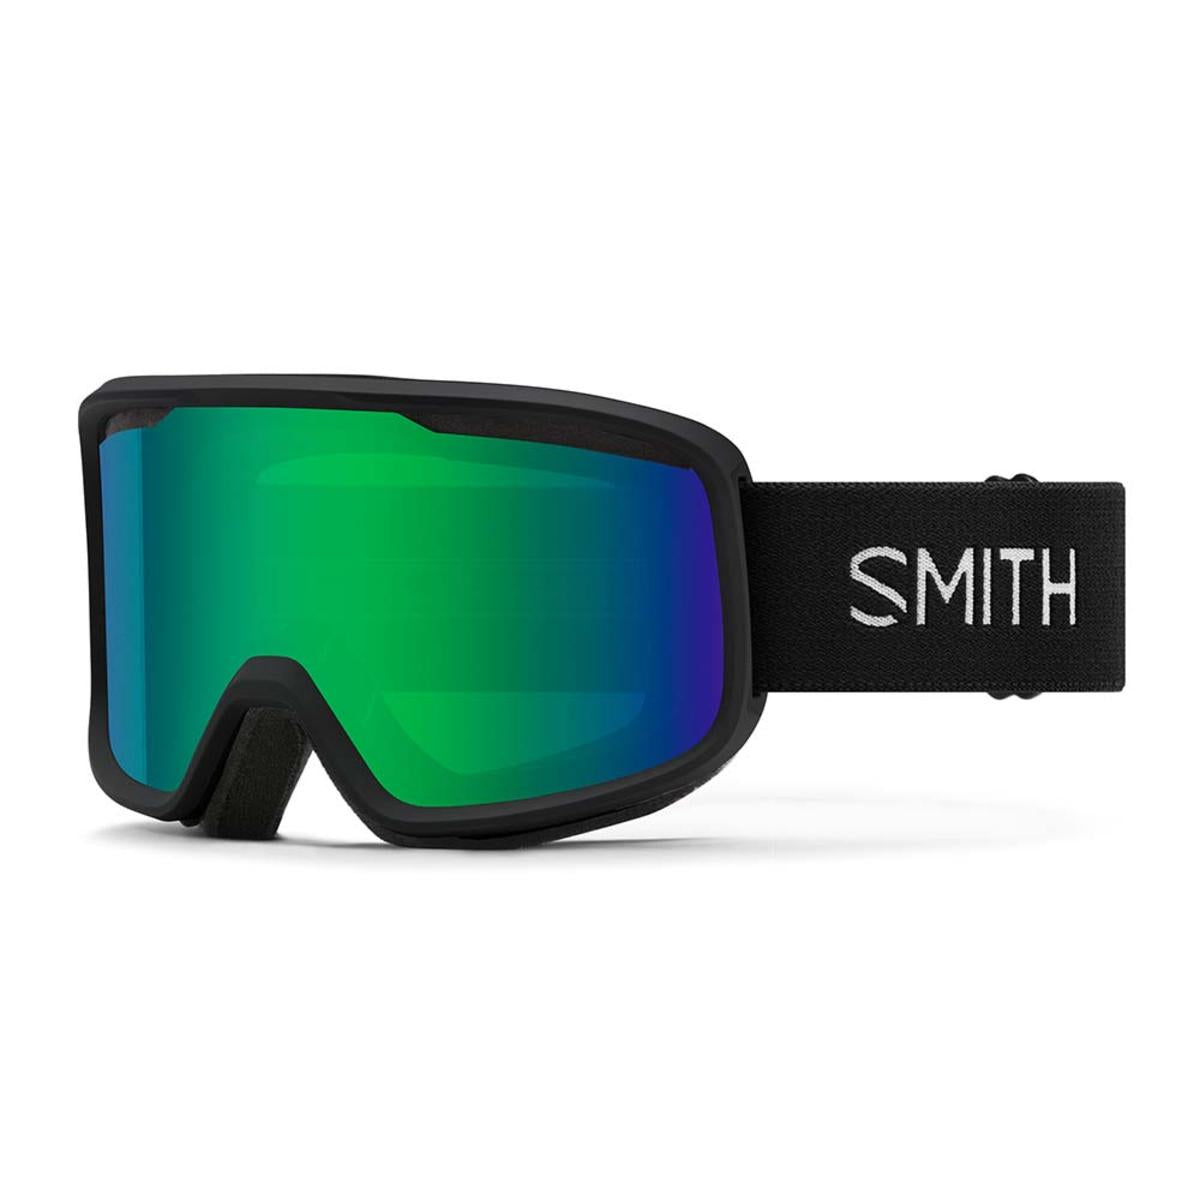 Smith Optics Frontier Goggles Green Sol-X Mirror - Black Frame